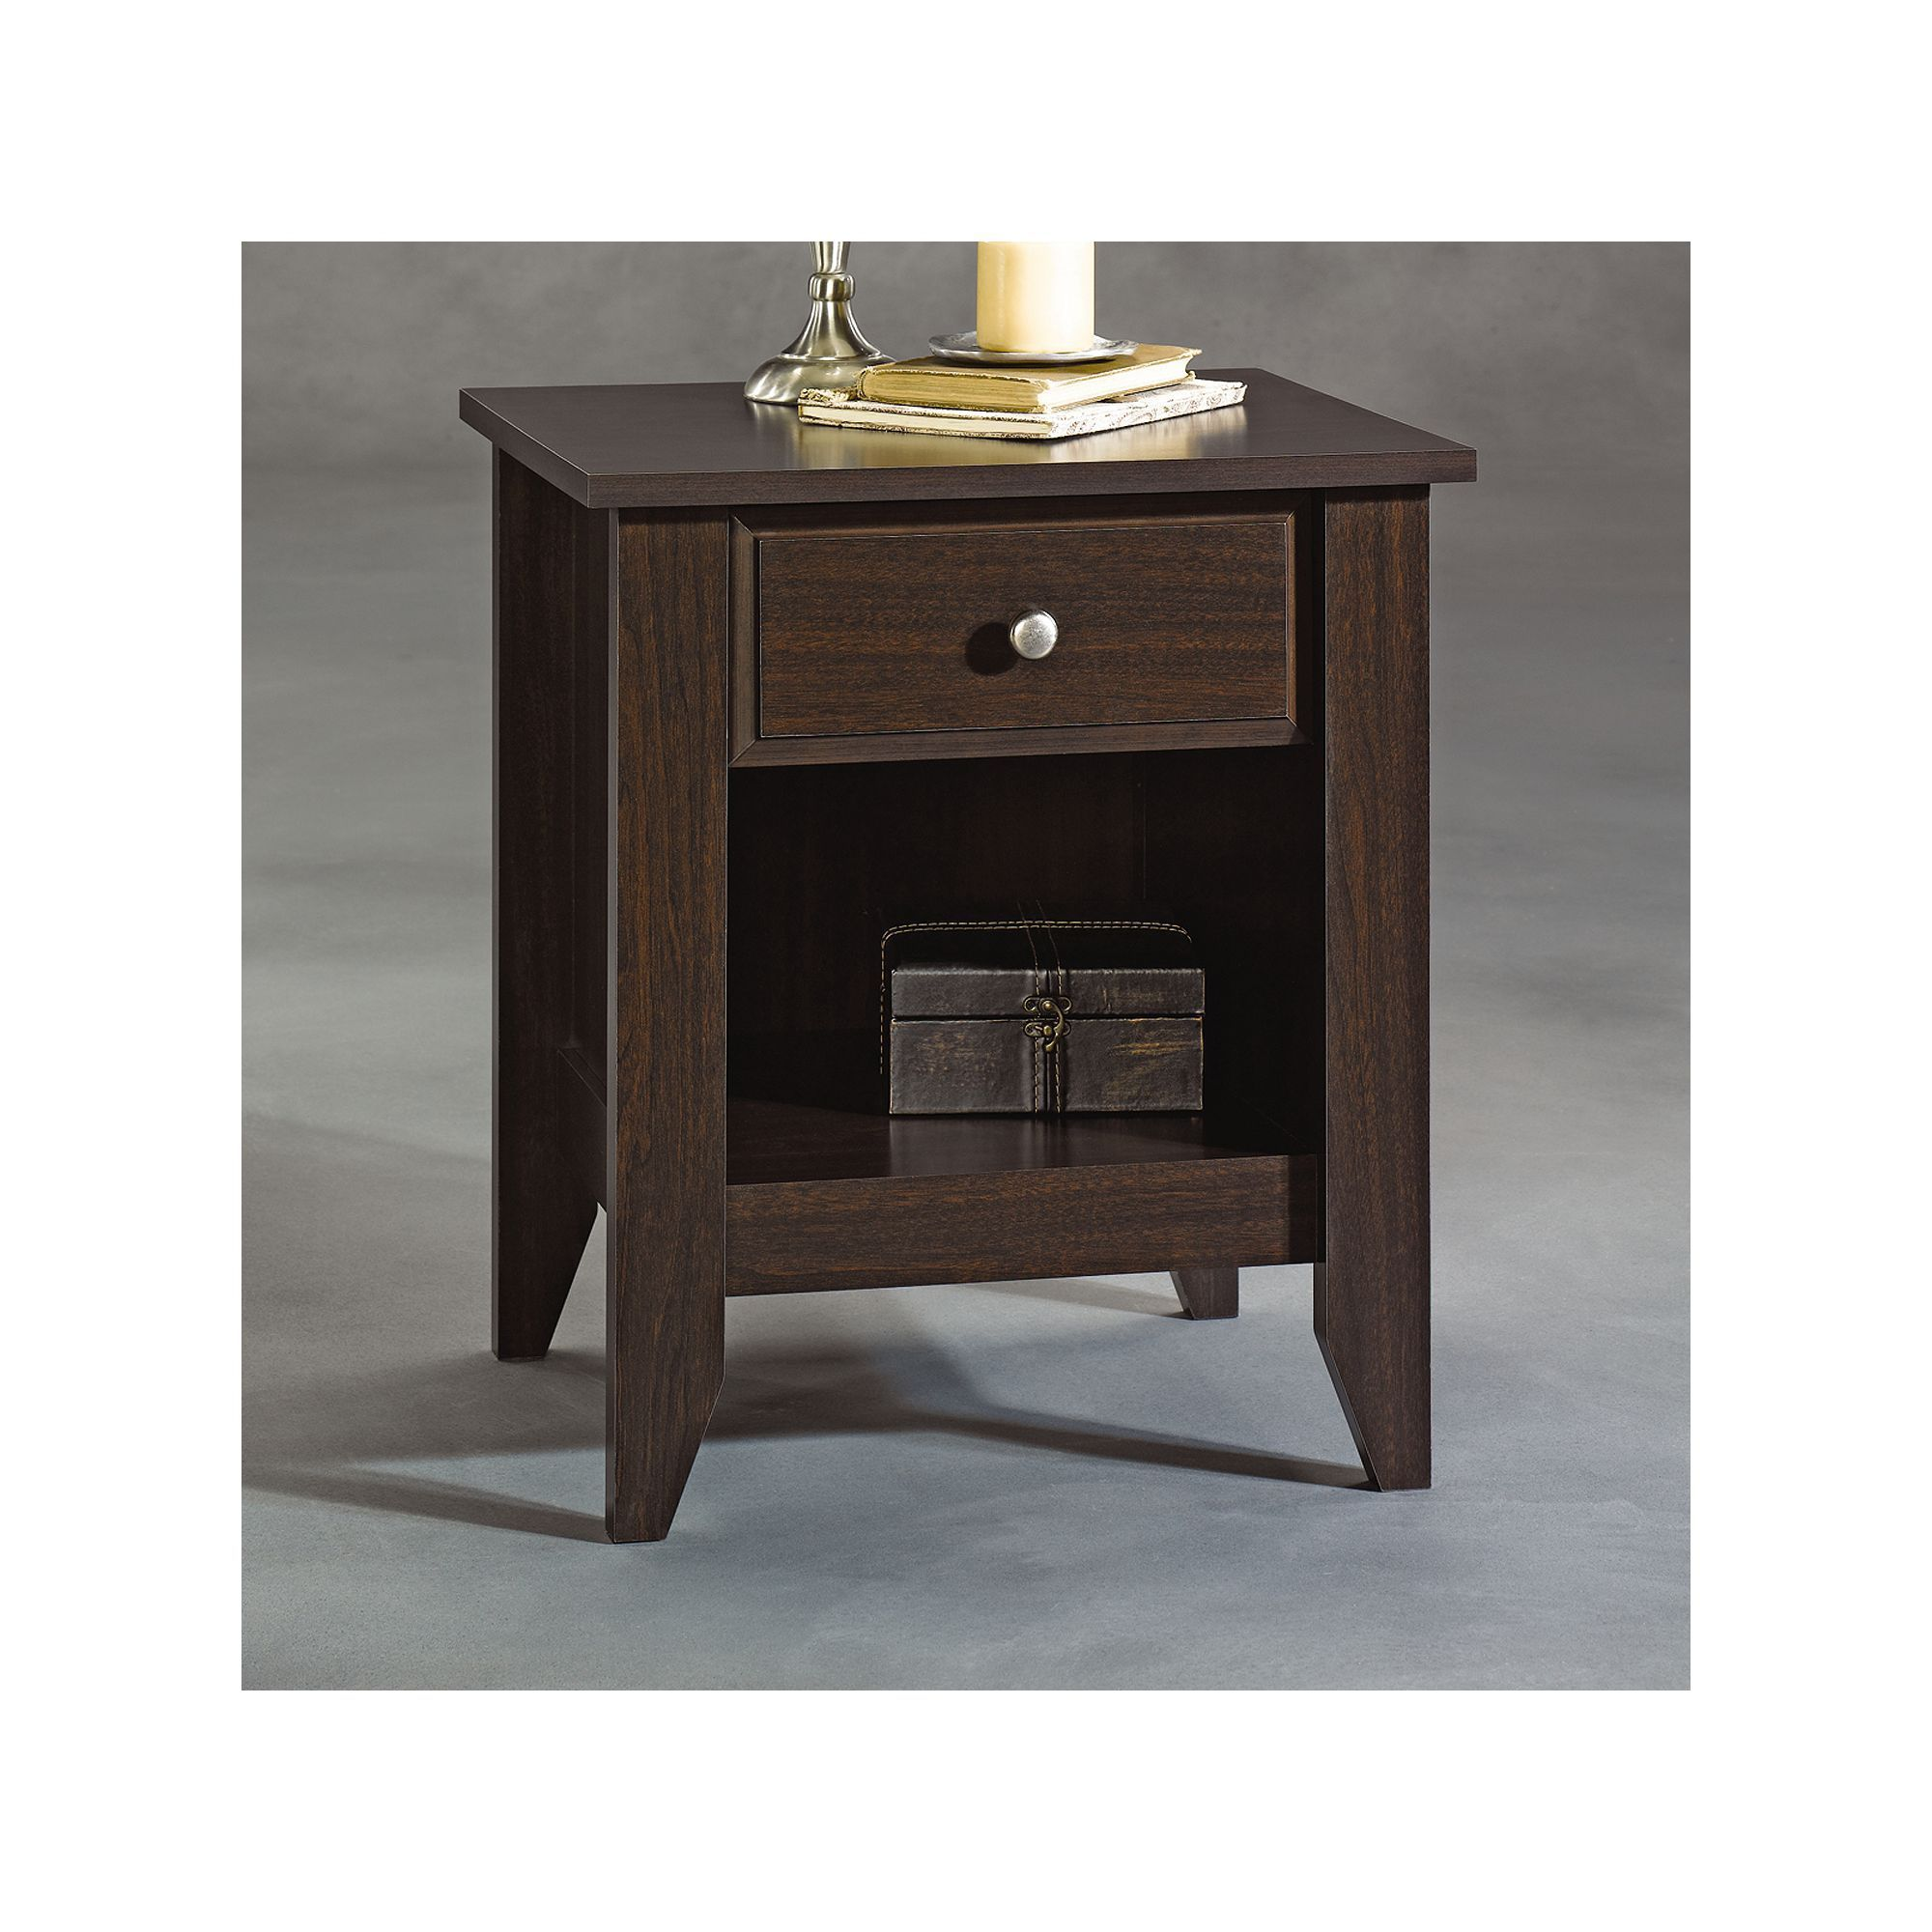 Sauder shoal creek nightstand white nightstands and products